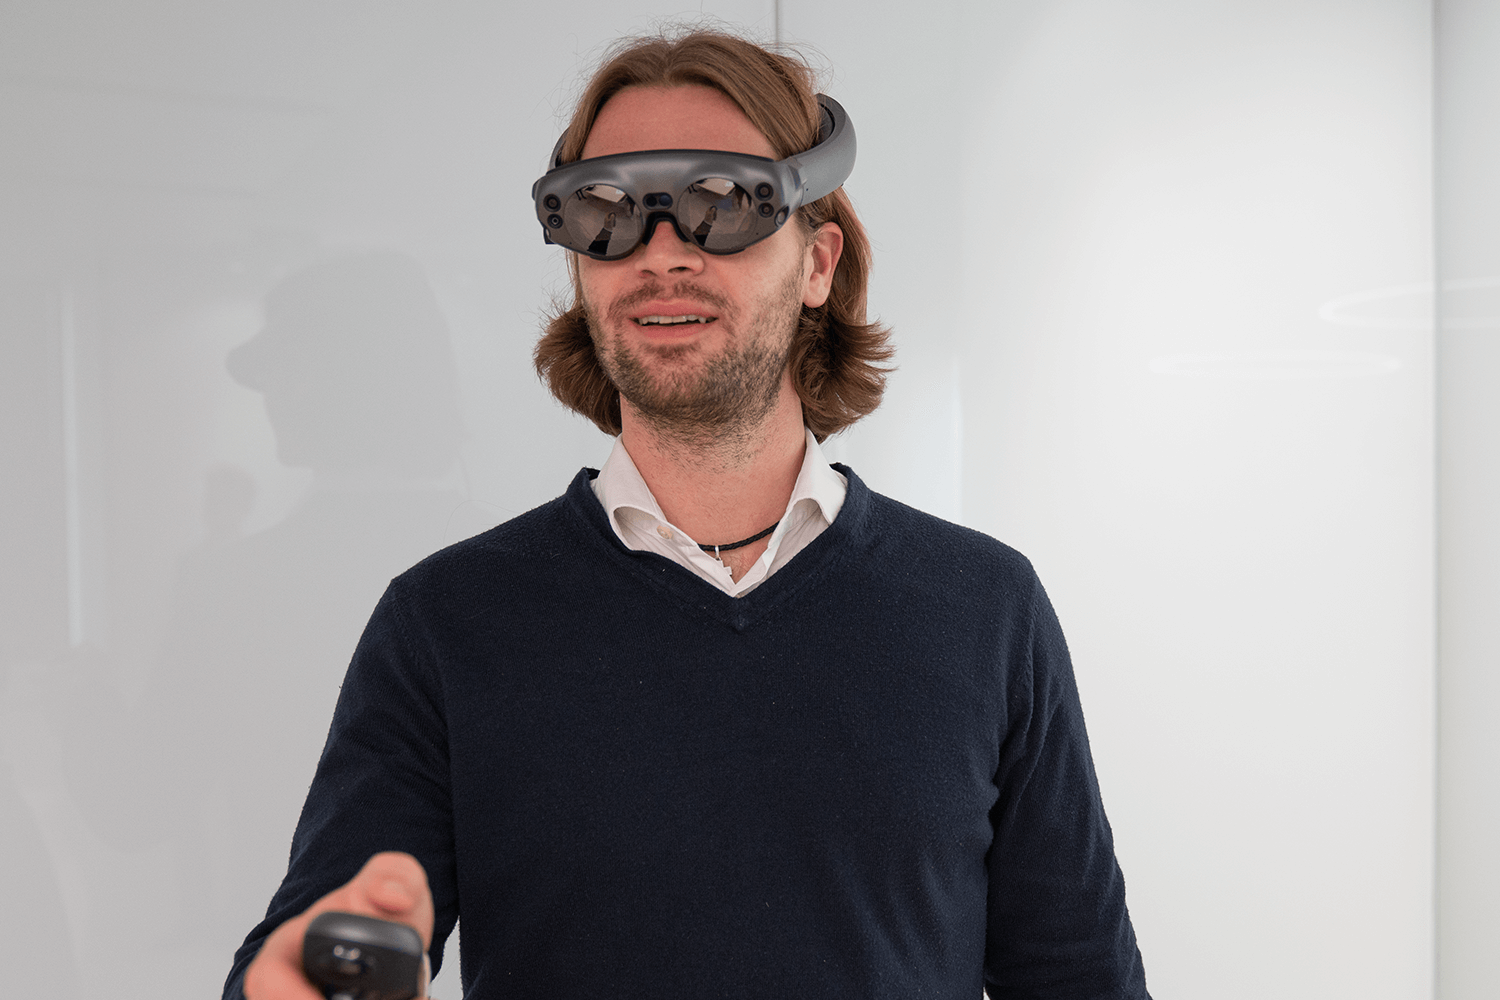 德国莱比锡 Universitätsklinikum 的 Alexander Bartella 医生演示使用 Brainlab Mixed Reality Viewer